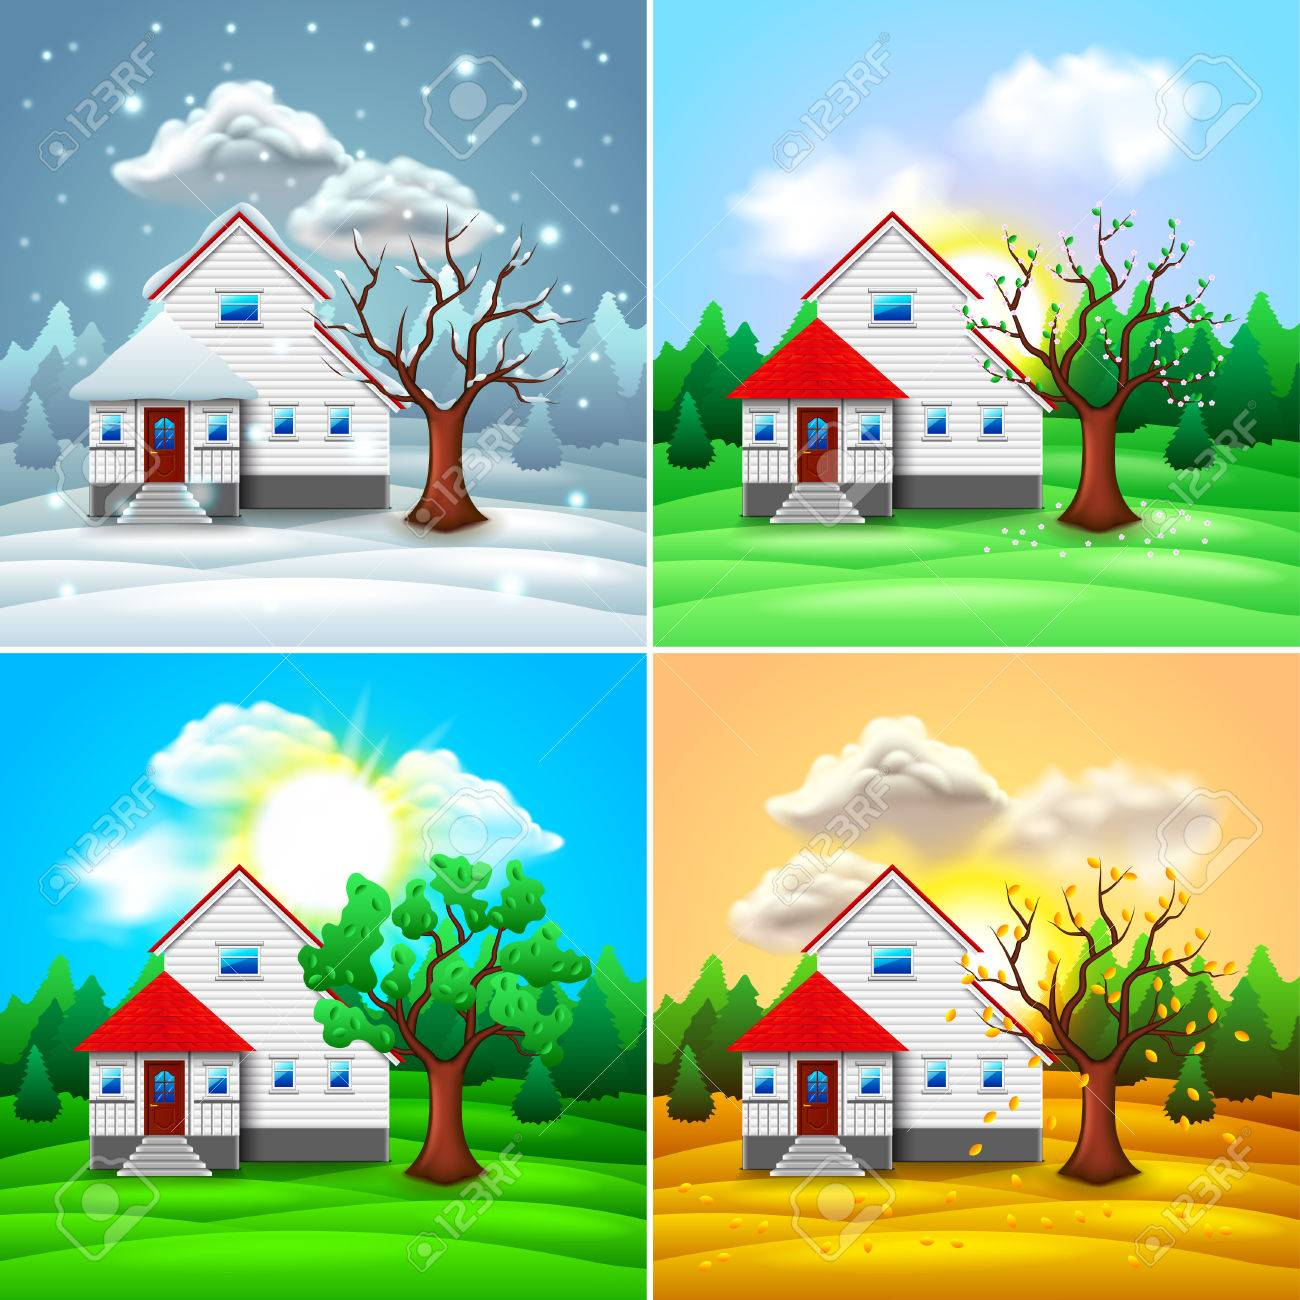 House and nature four seasons photo-realistic vector illustration - 77216817